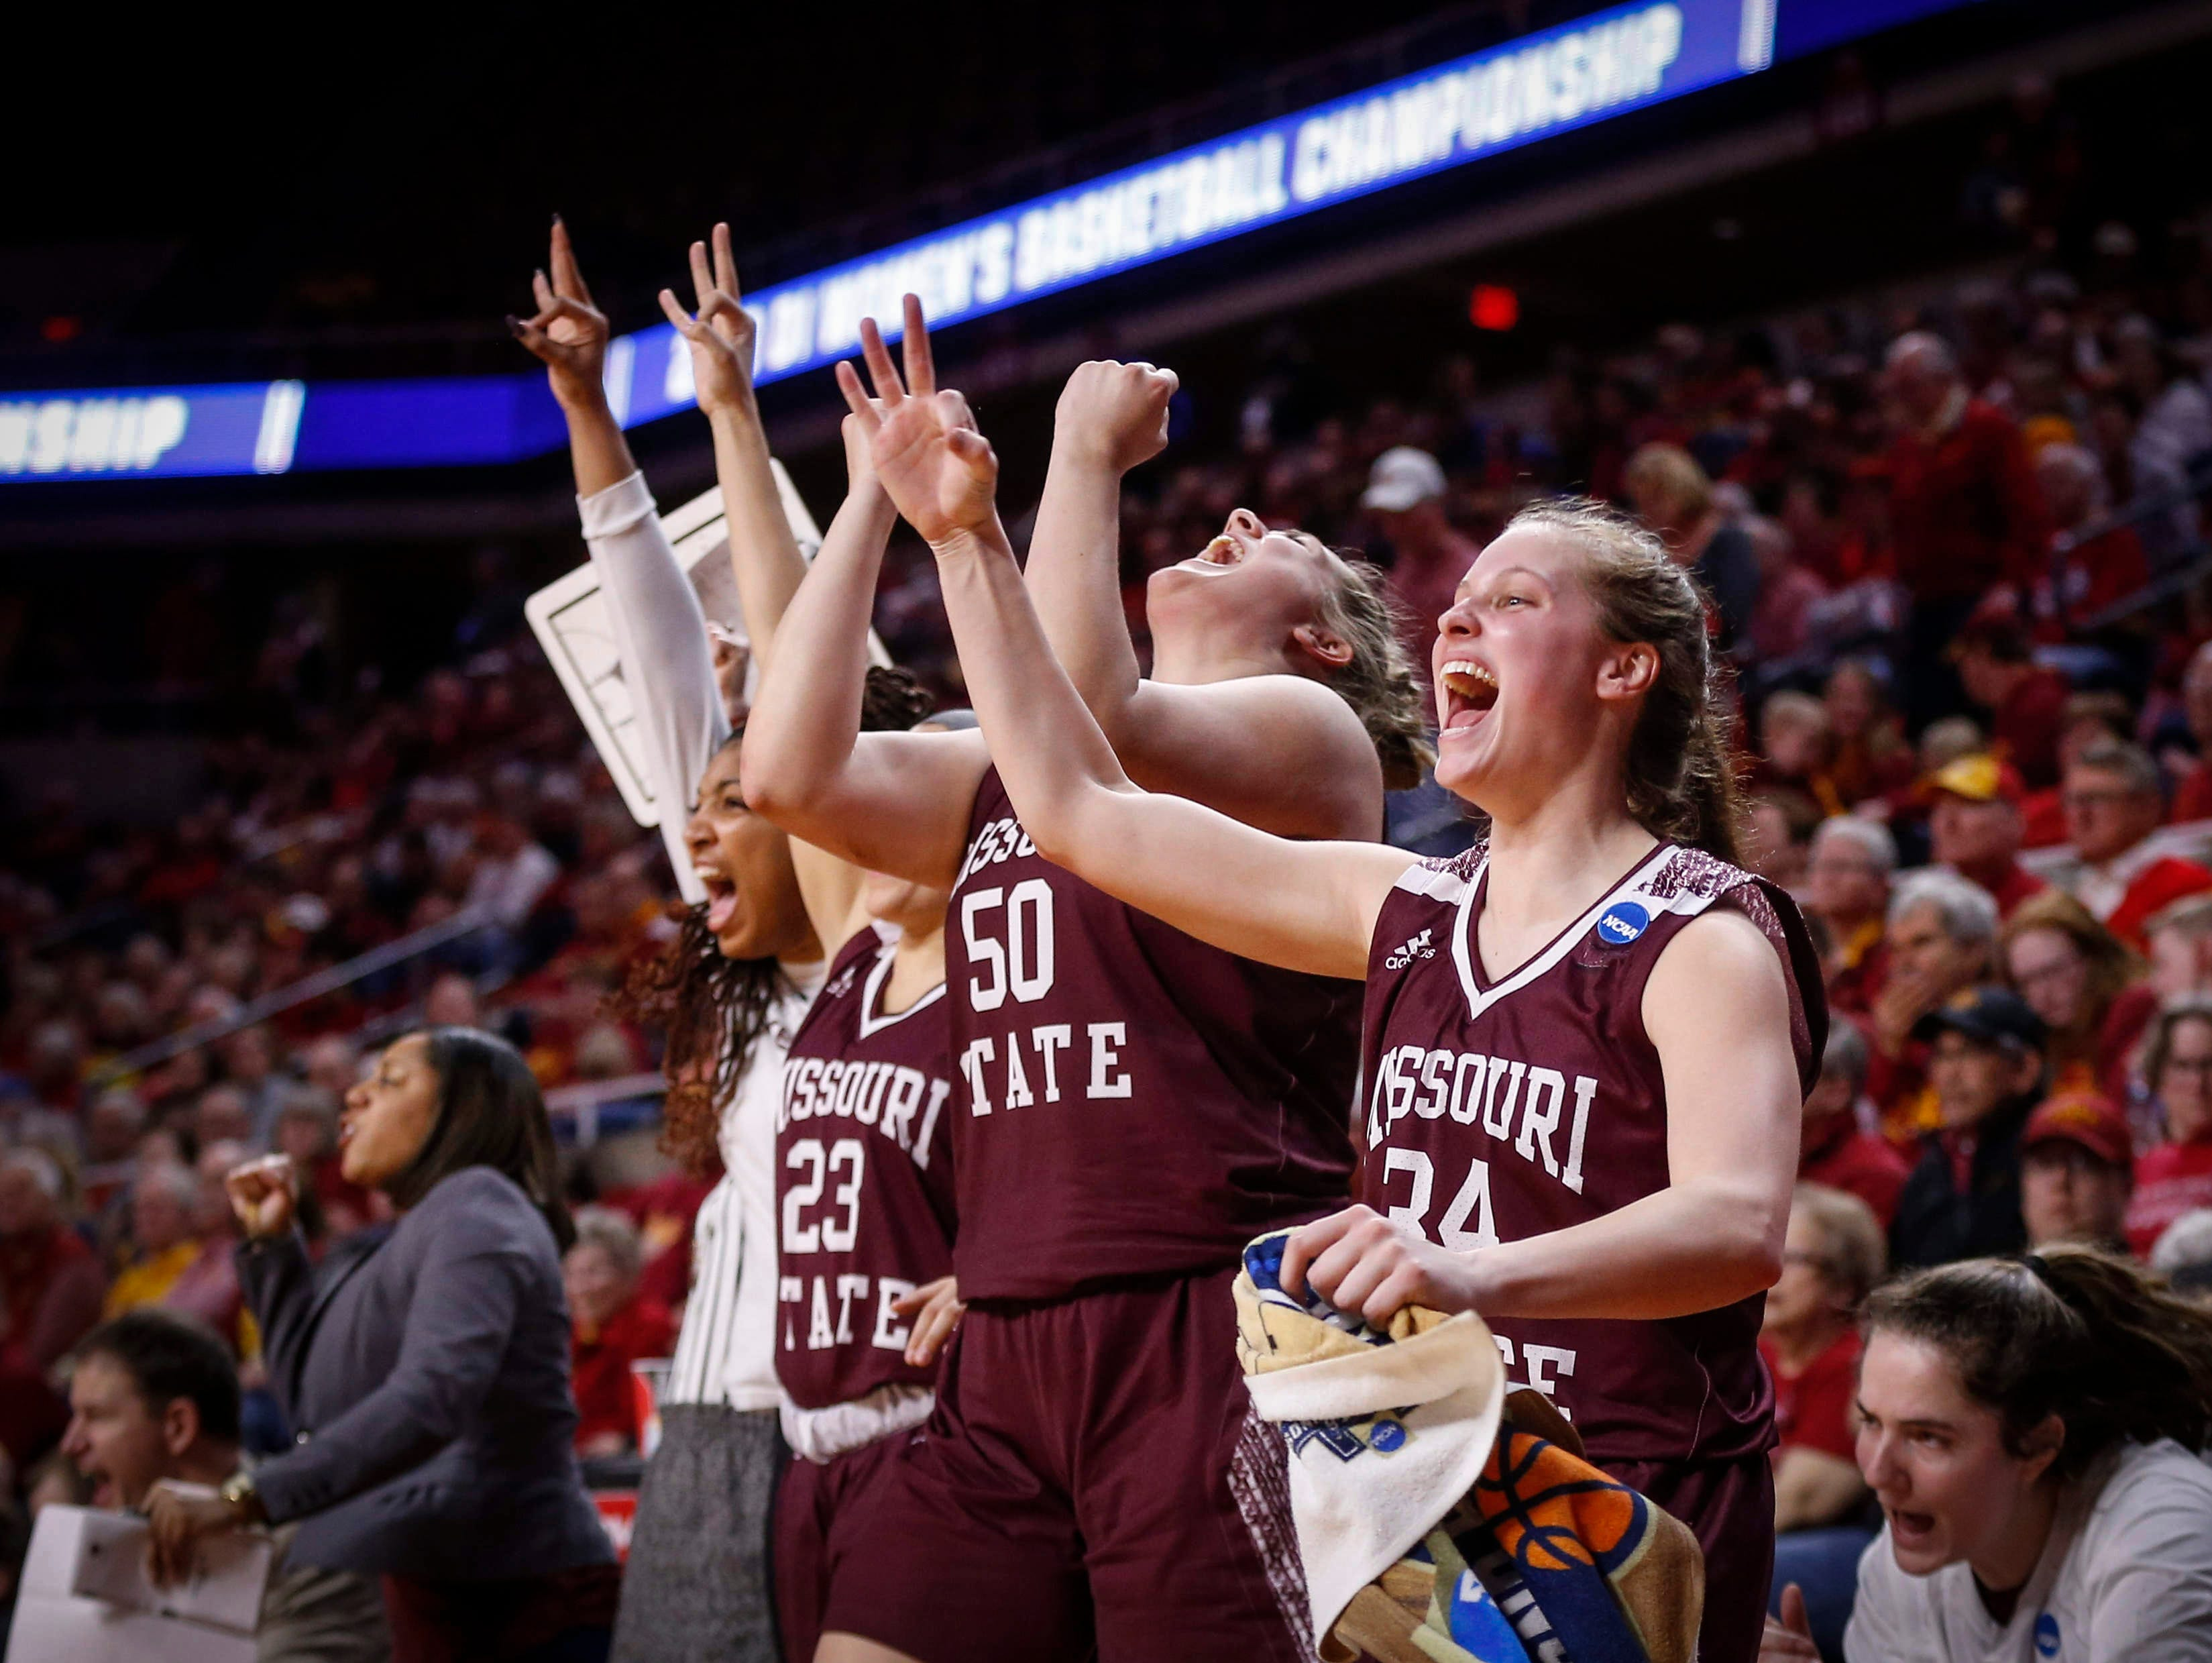 Members of the Missouri State women's basketball team react after Elle Ruffridge hit a three-pointer in the third quarter against DePaul on Saturday, March 23, 2019, at Hilton Coliseum in Ames.